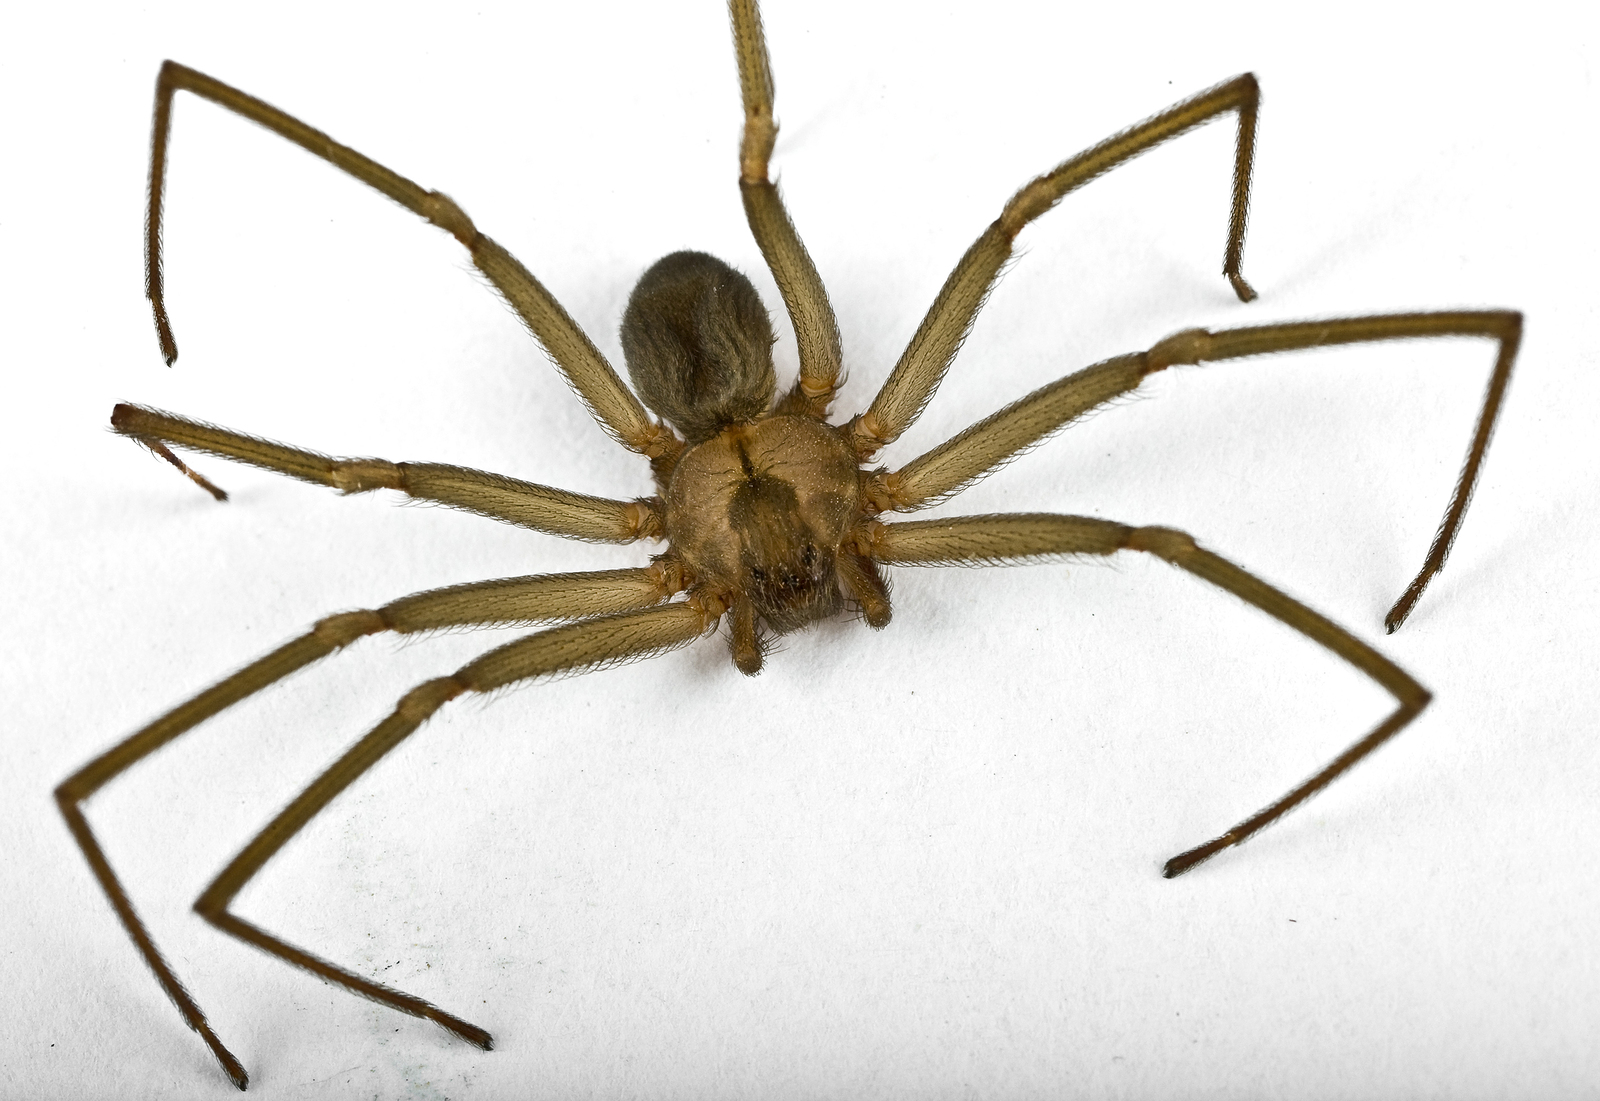 Brown Recluse Pictures Image Gallery - m